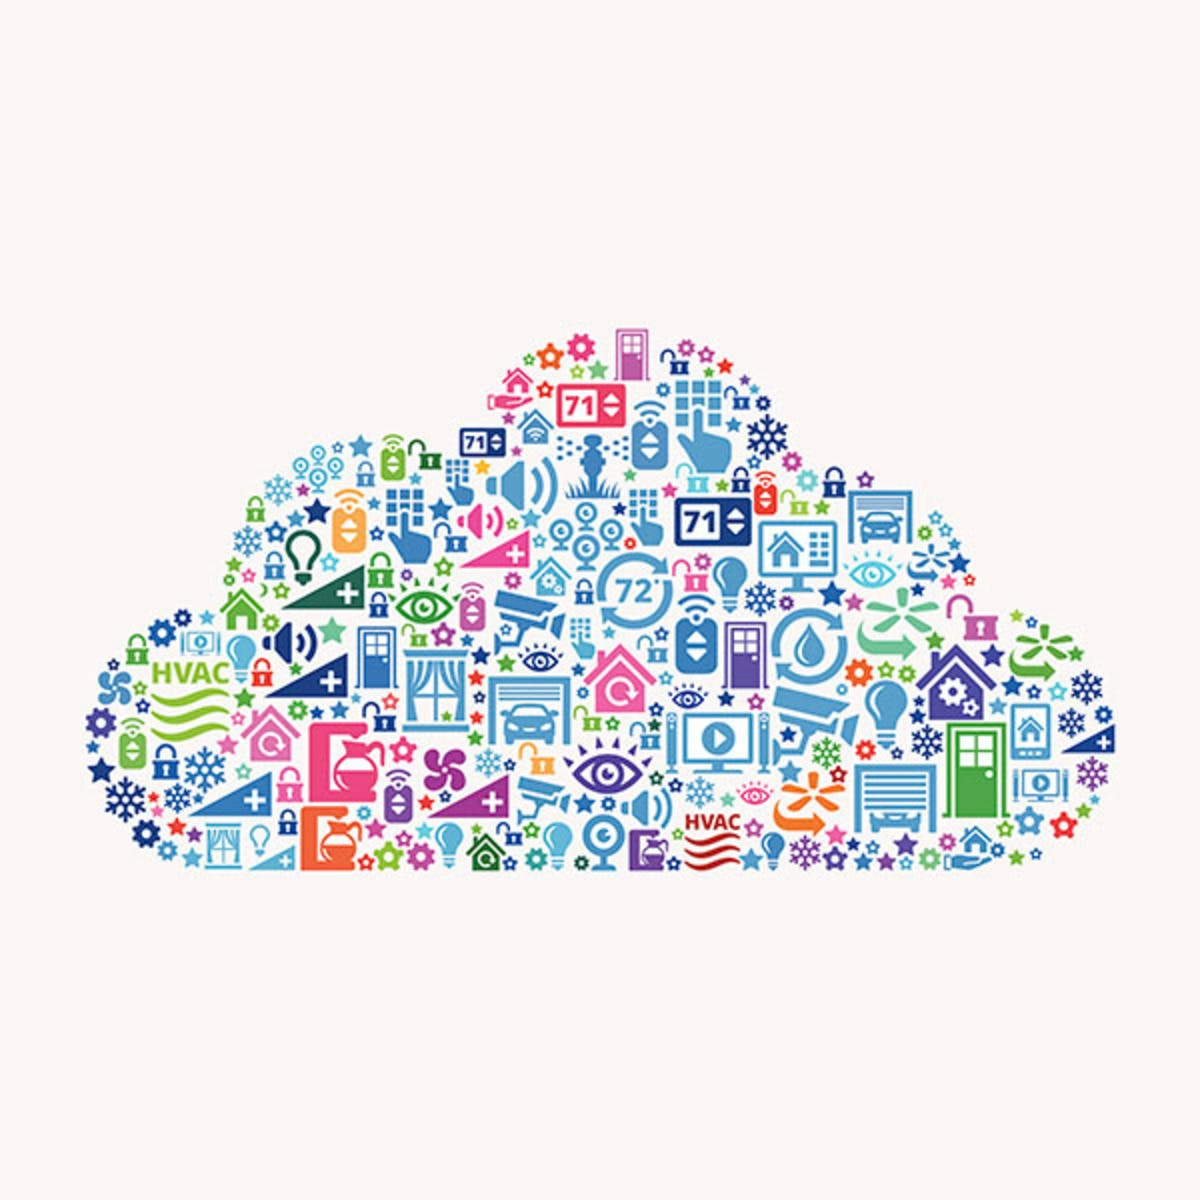 Internet of Things V2: Setting up and Using Cloud Services